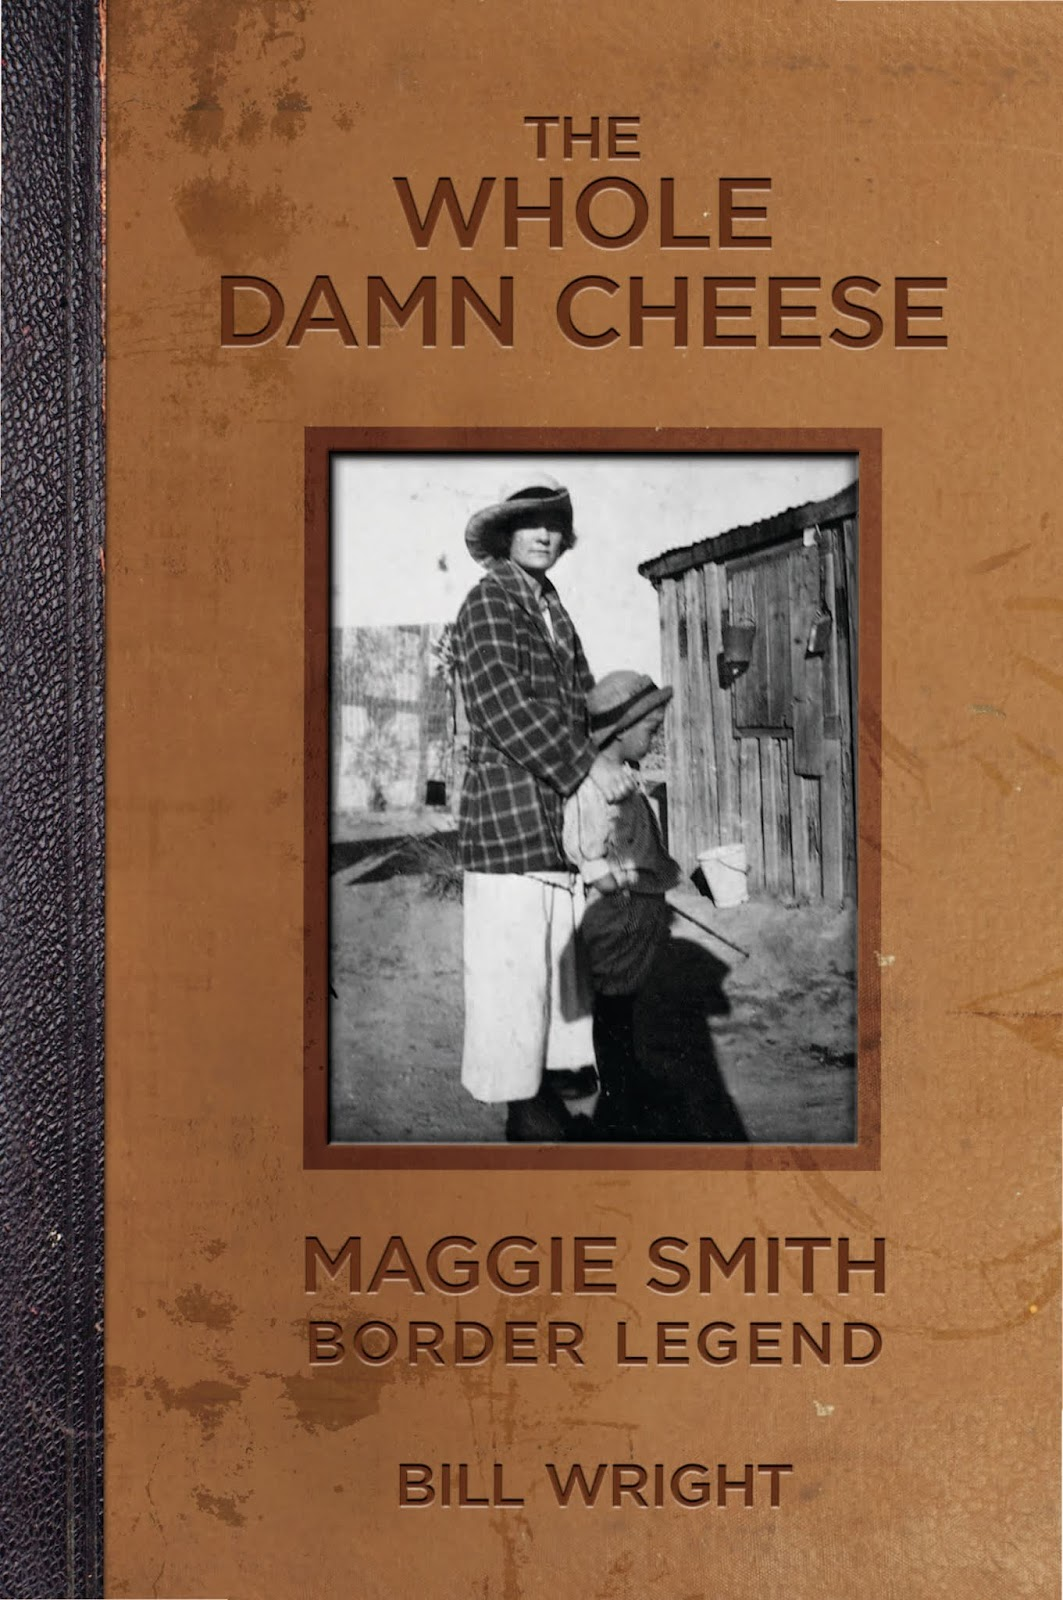 The Whole Damn Cheese book cover